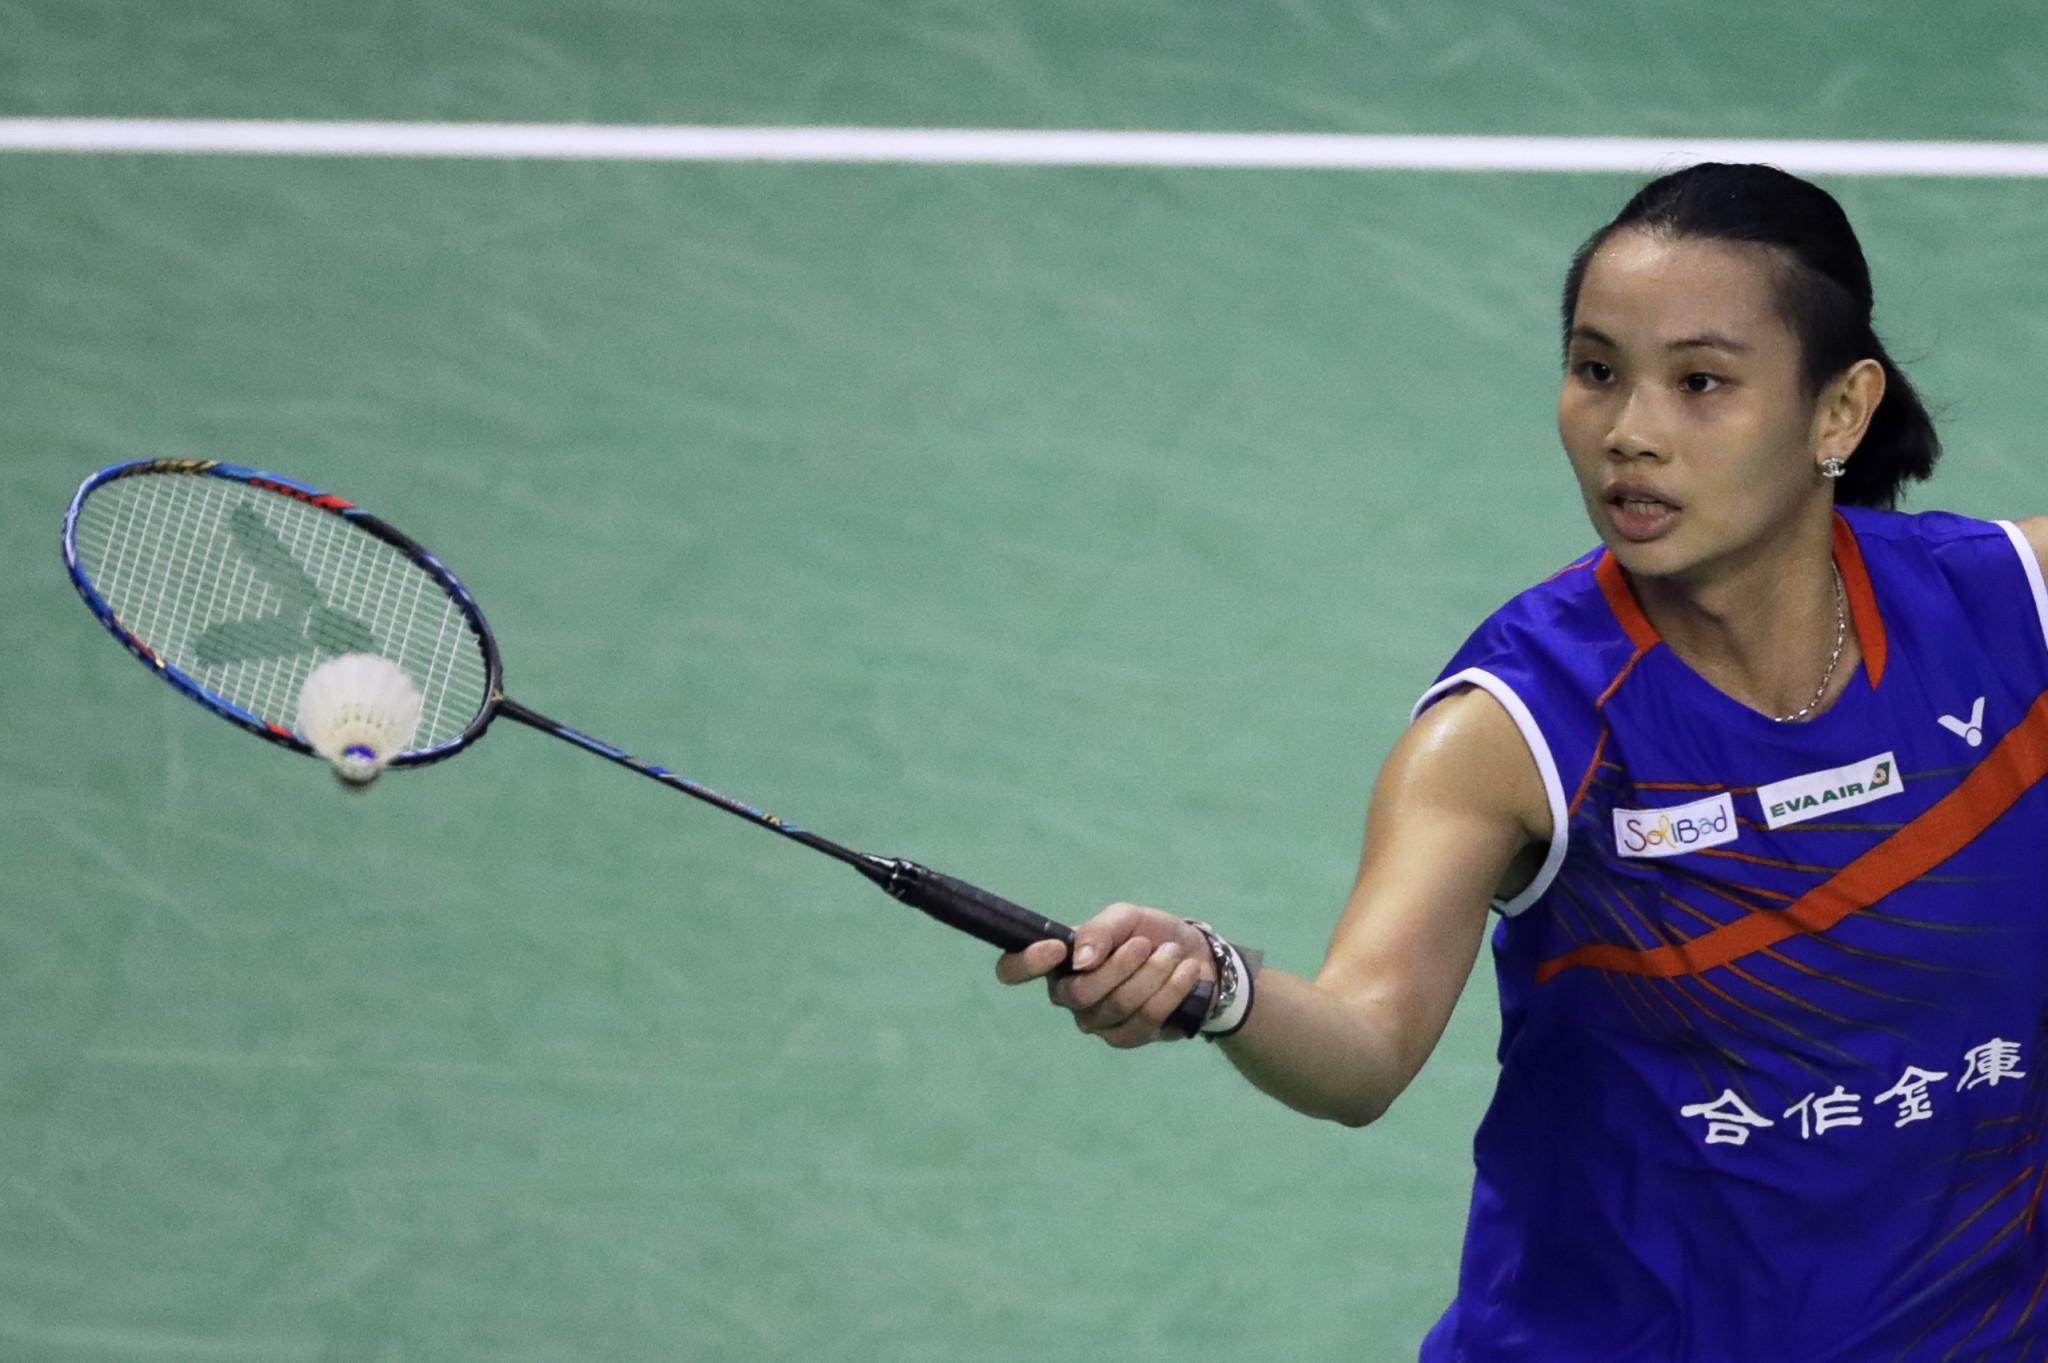 Women's top seed Tai Tzu-ying progressed to round two ©Getty Images